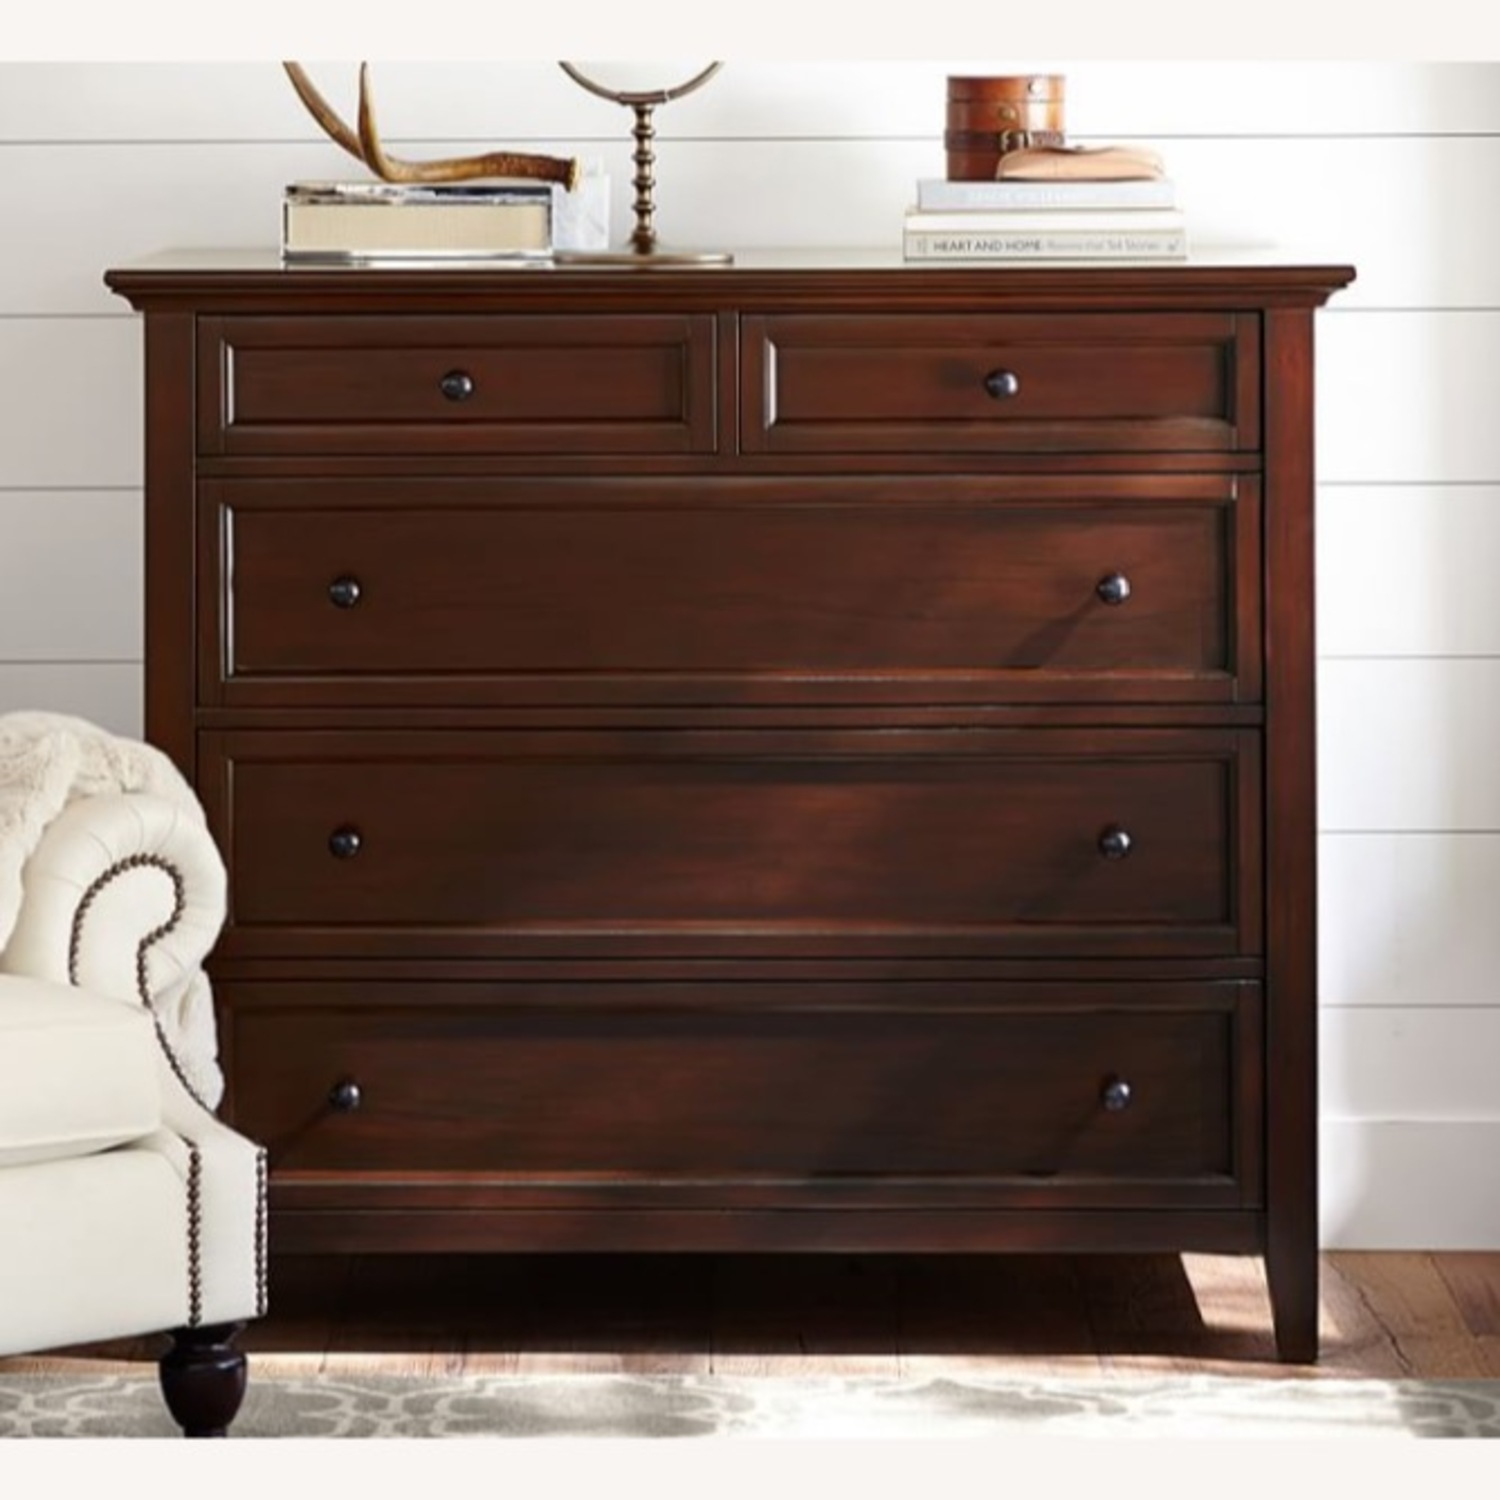 Pottery Barn Hudson 5-Drawer Dresser - image-1